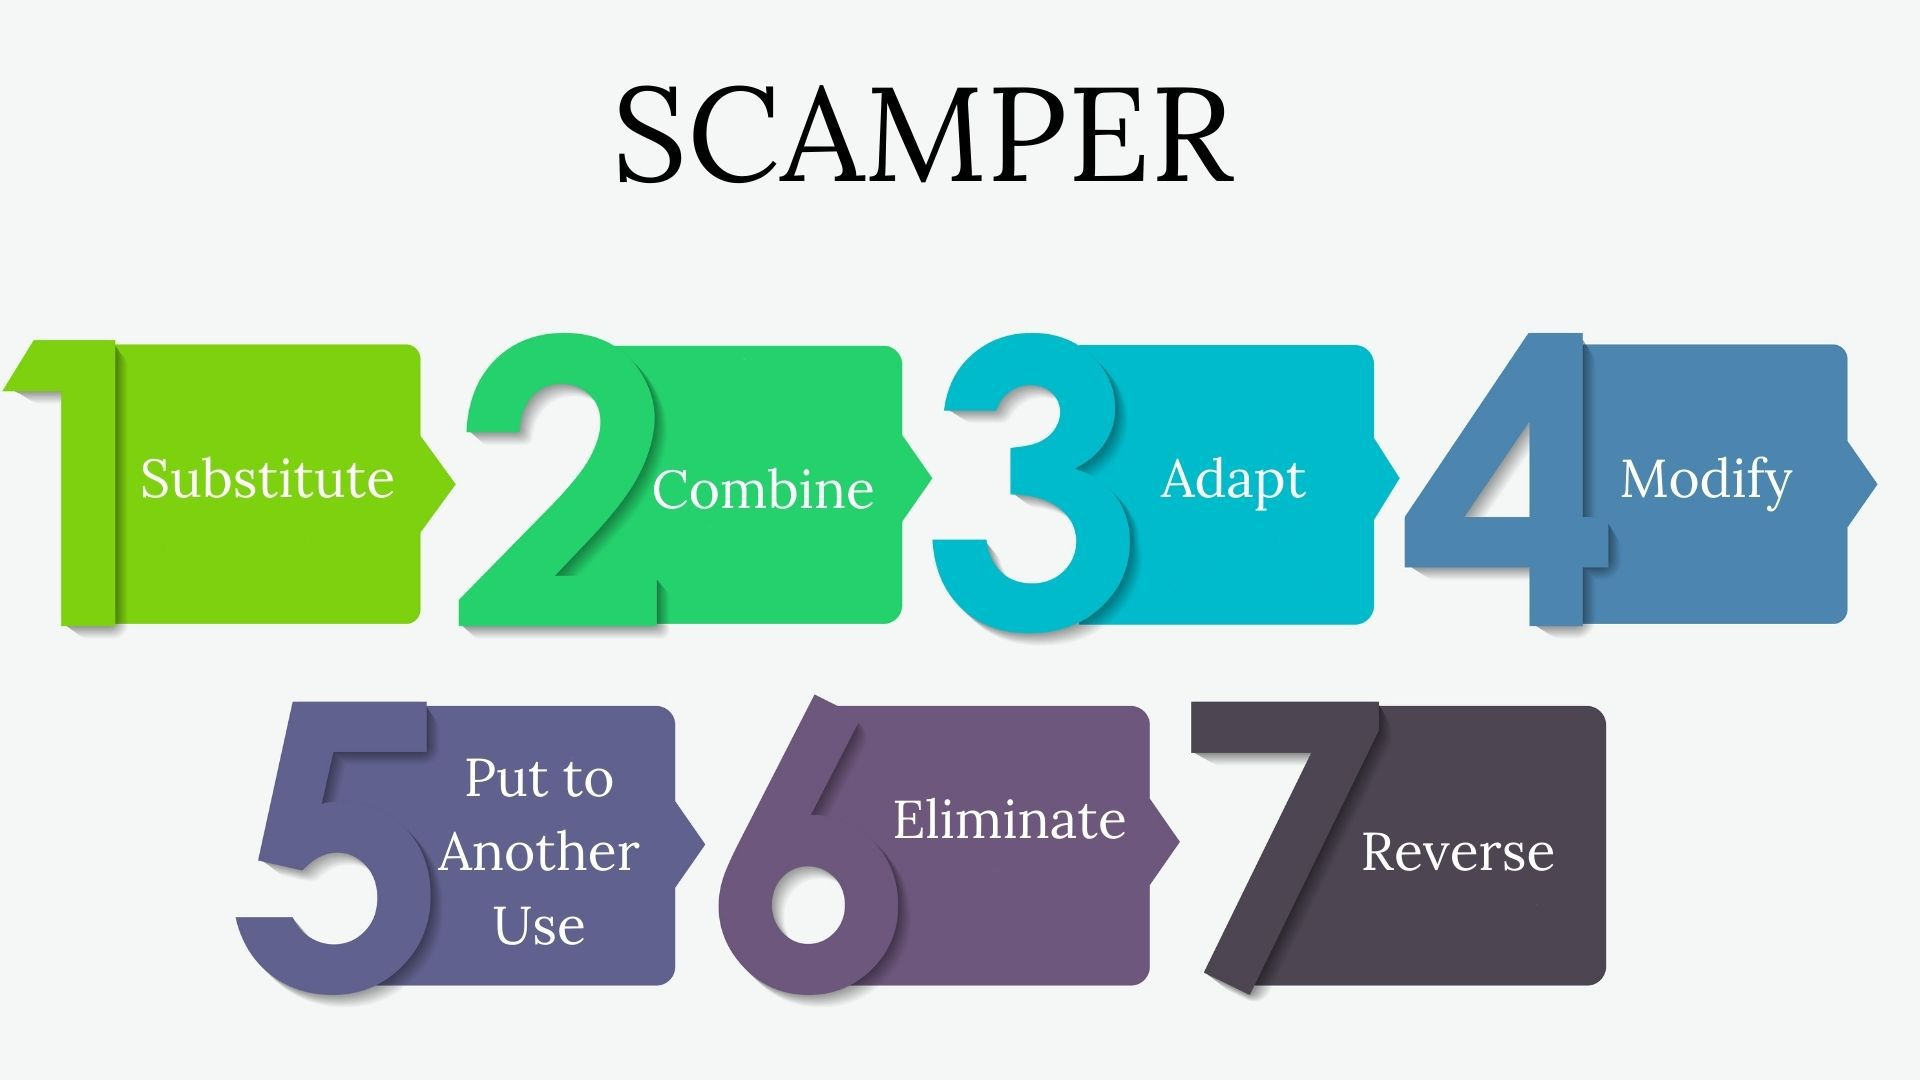 What is Scamper